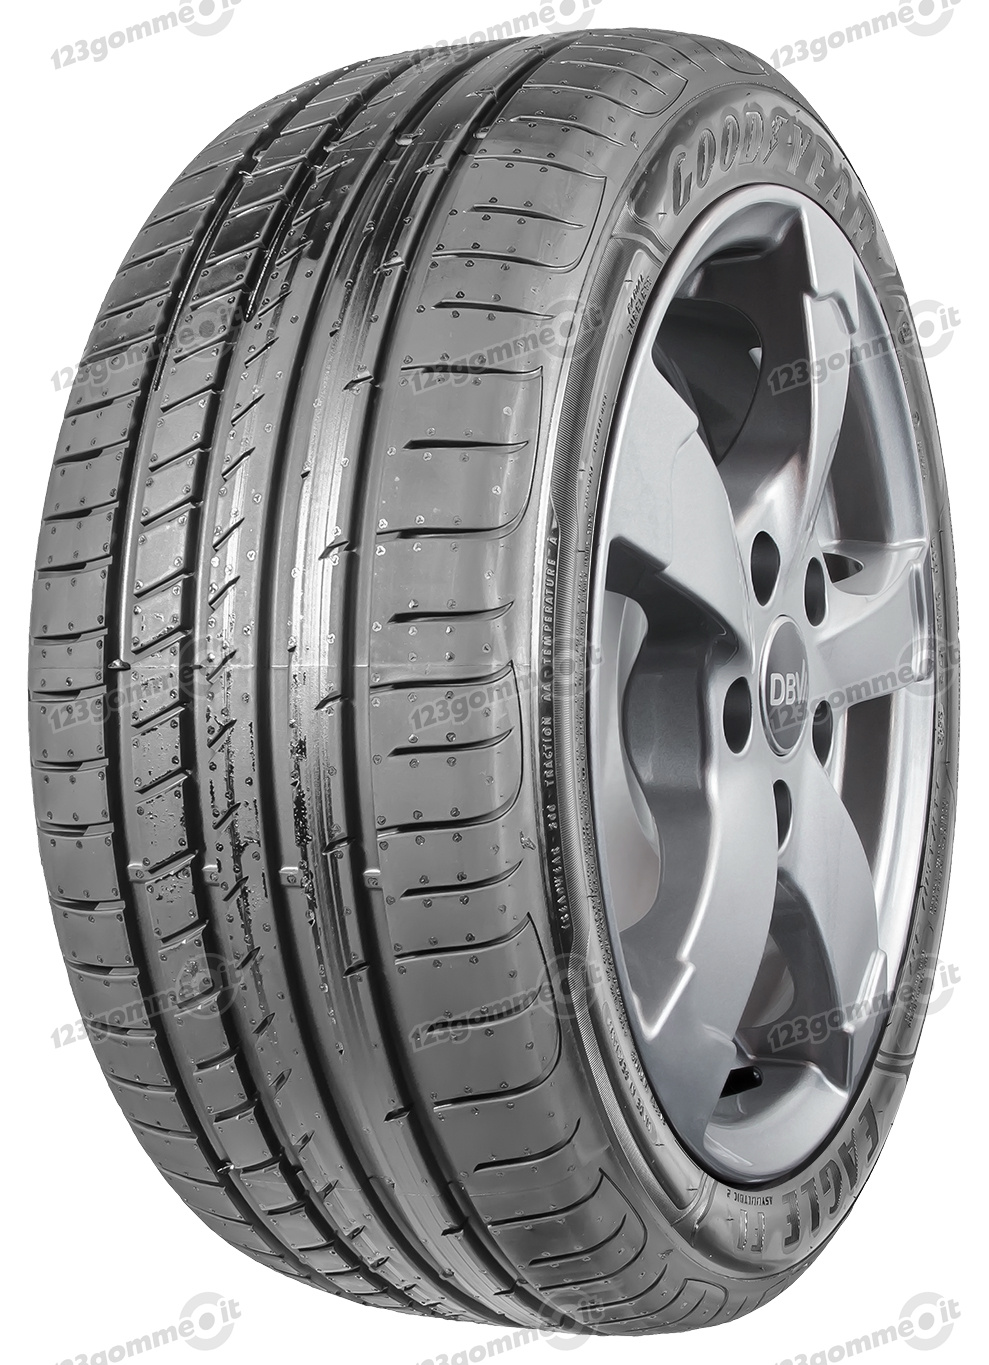 235/35 ZR20 (88Y) Eagle F1 Asymmetric 2 N0 FP  Eagle F1 Asymmetric 2 N0 FP